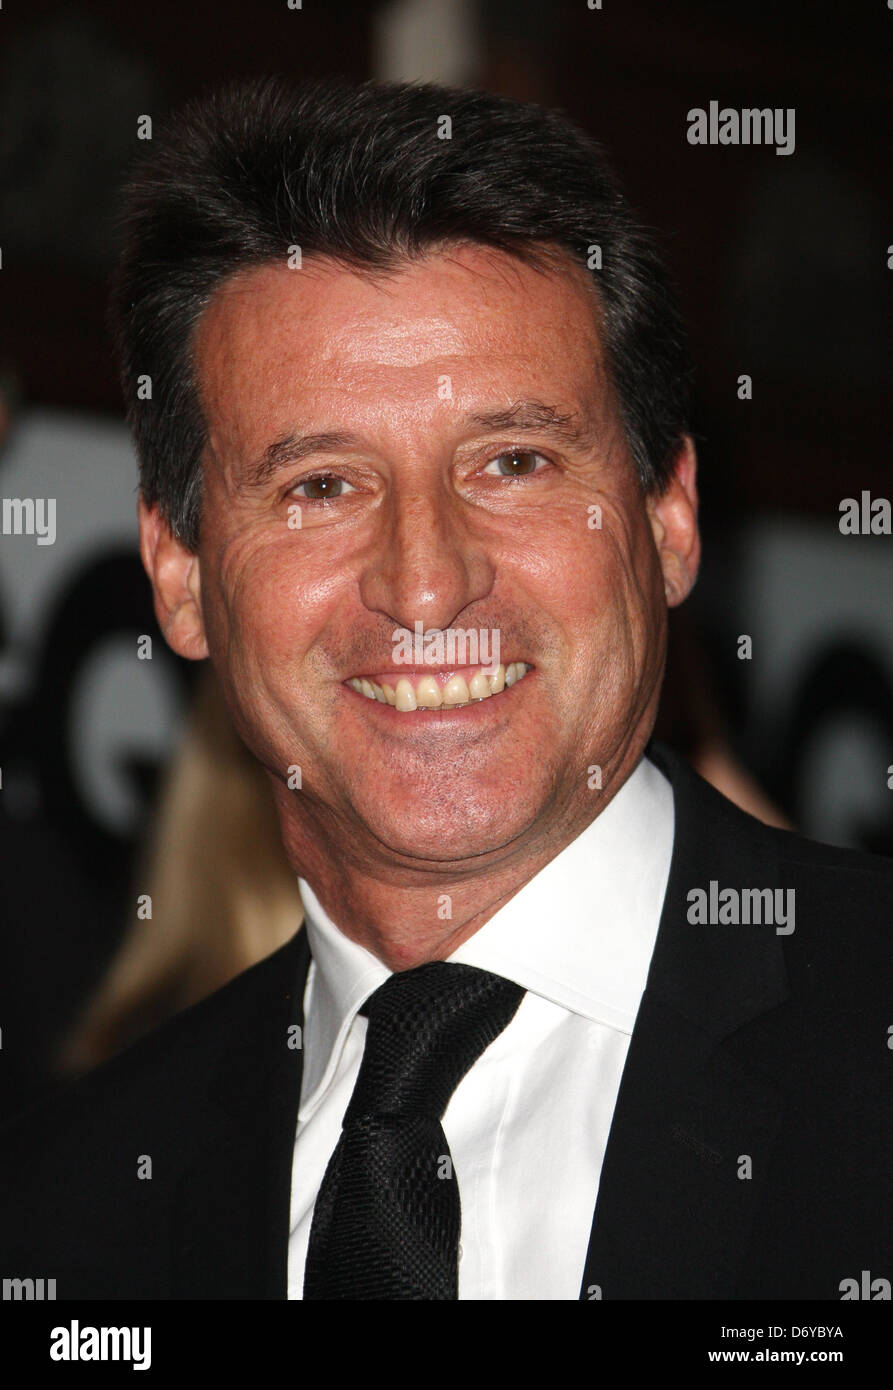 Lord Sebastian Coe GQ Men of the Year Awards 2011 - Arrivals London, England - 06.09.11 - Stock Image